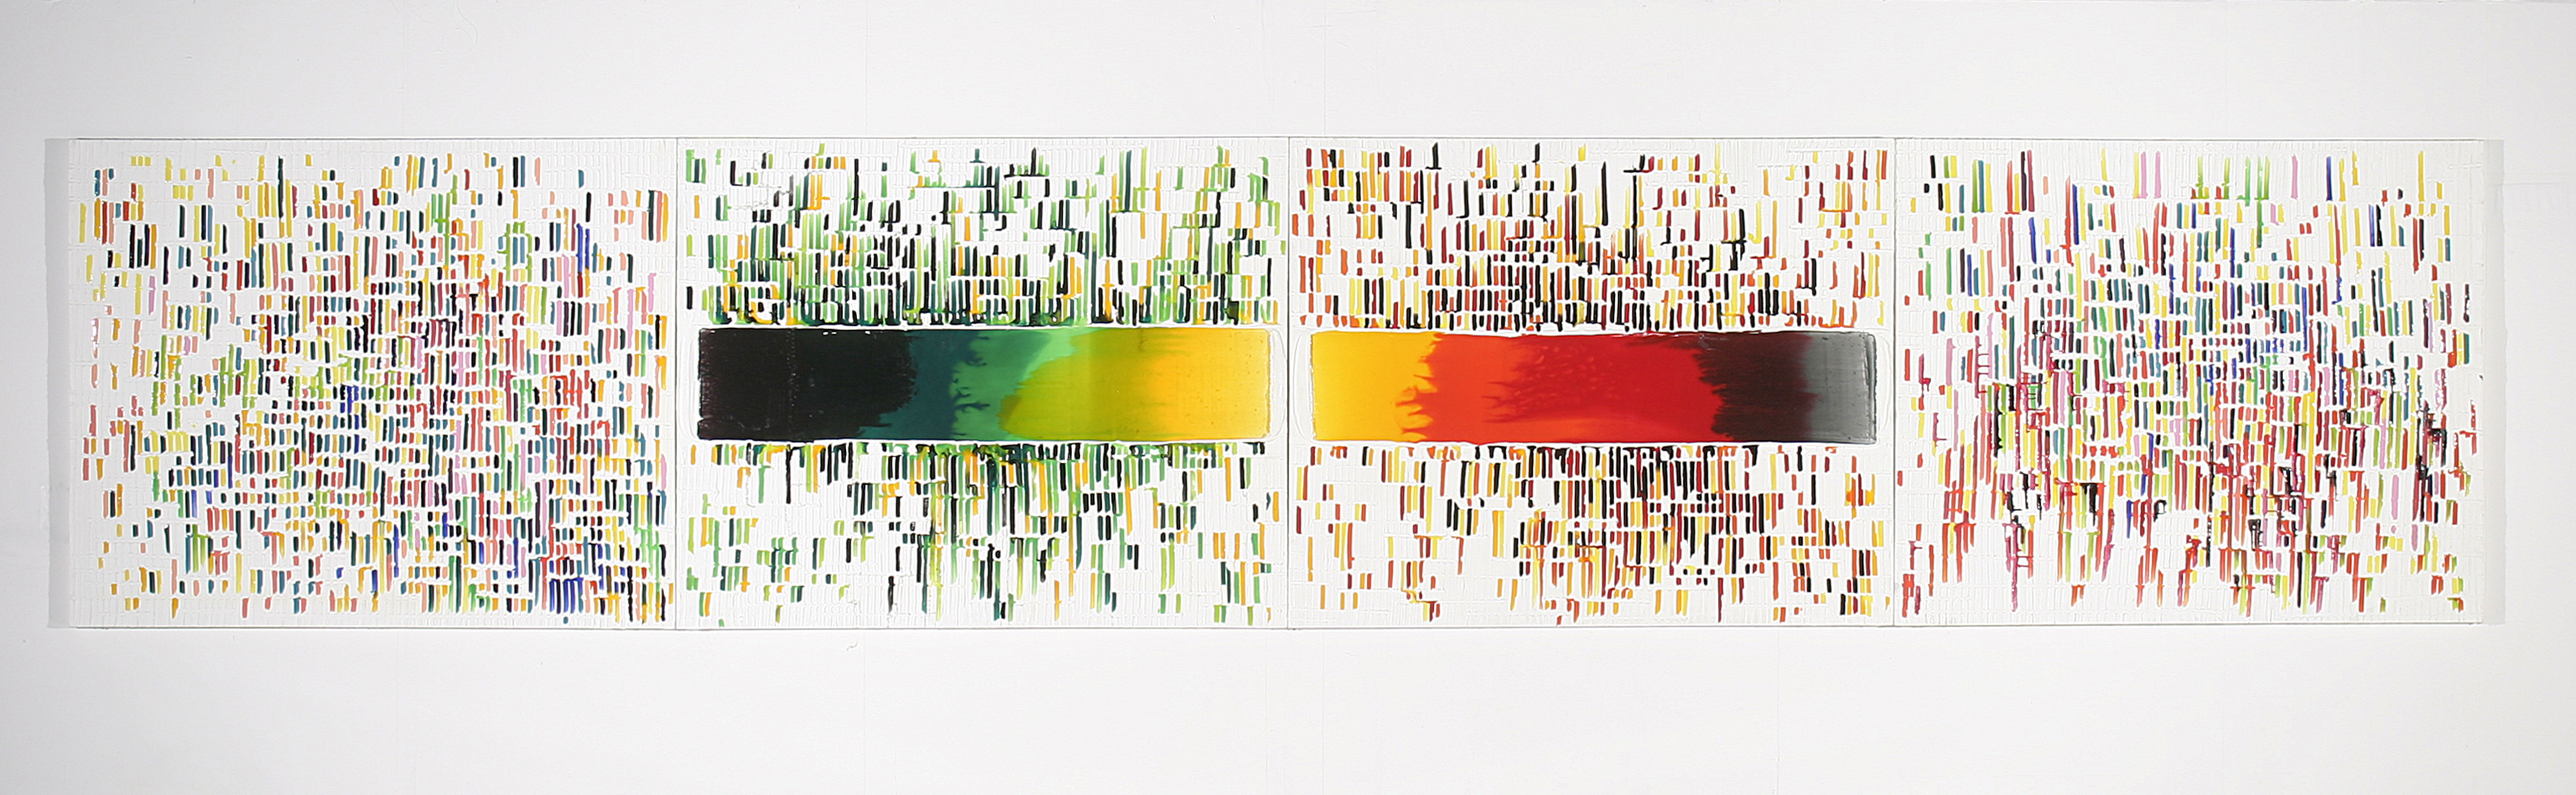 neuralnoise648x130mixed media2005손진형.jpg